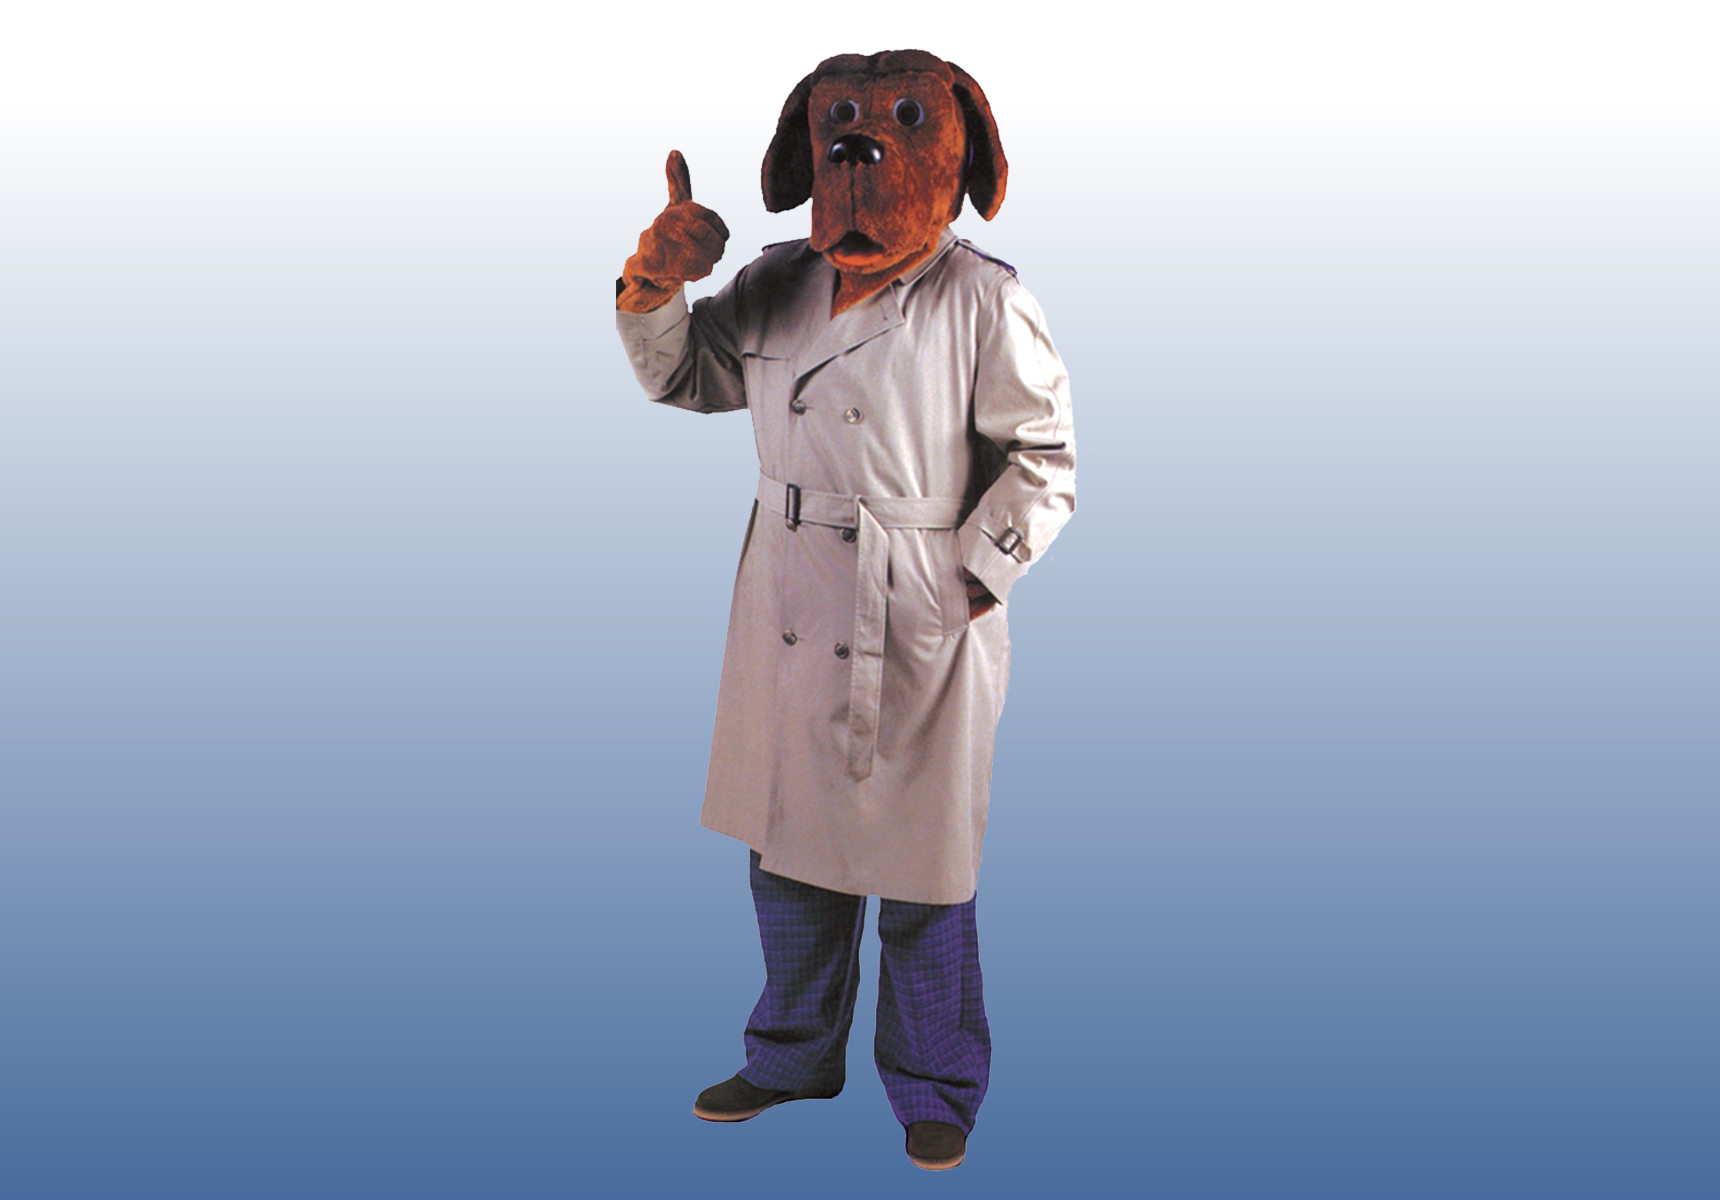 mcgruff the crime dog costume